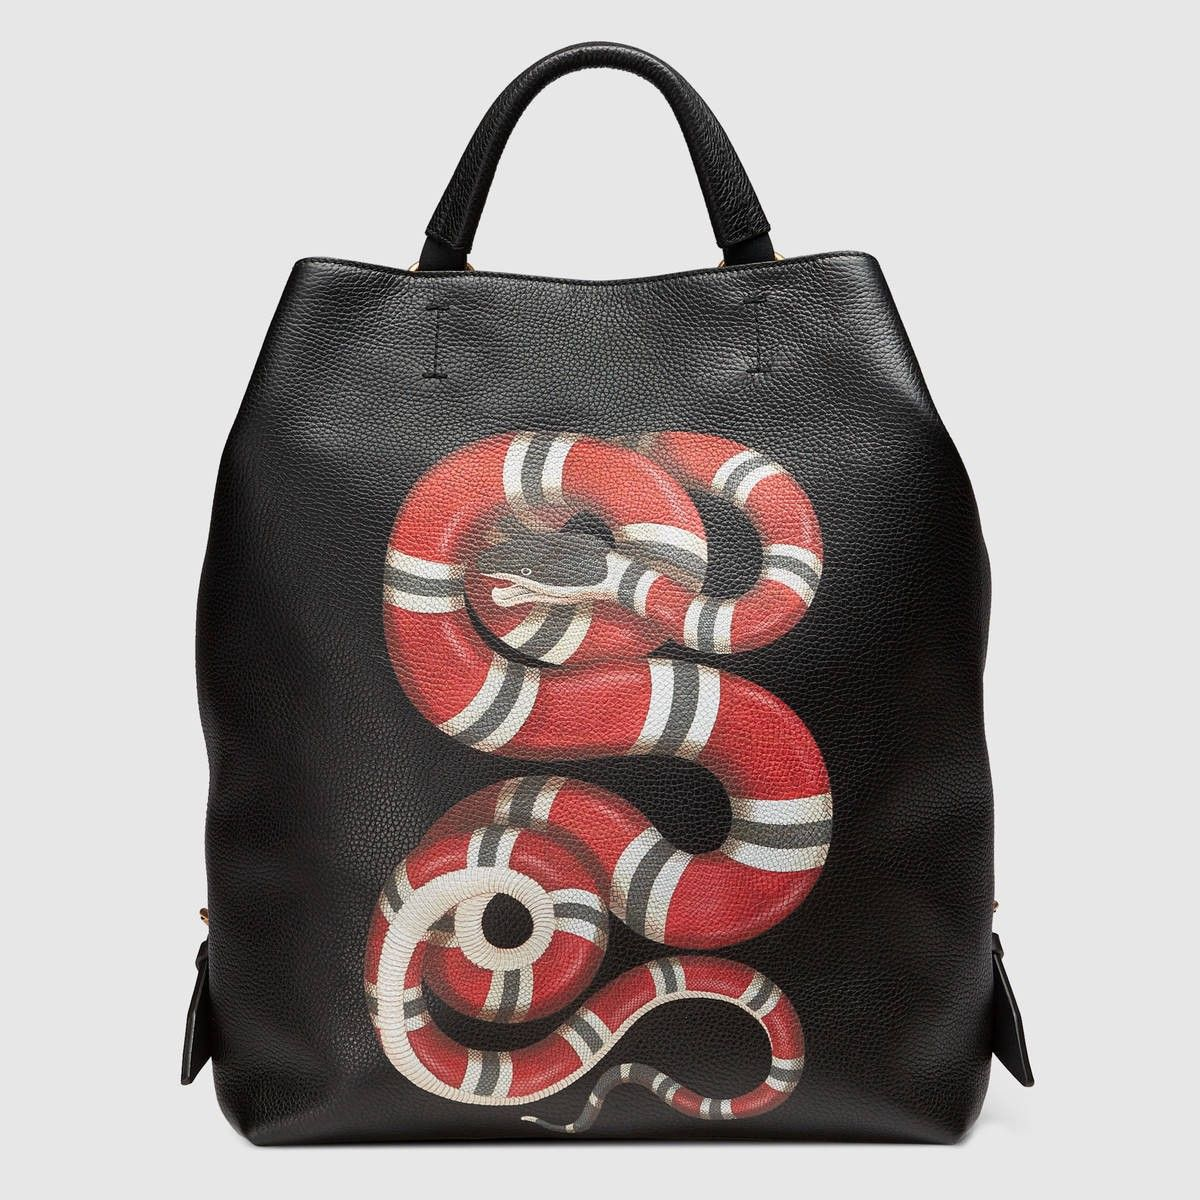 02c64c77 GUCCI Kingsnake print leather backpack - black leather. #gucci #bags # leather #lining #backpacks #linen #cotton #